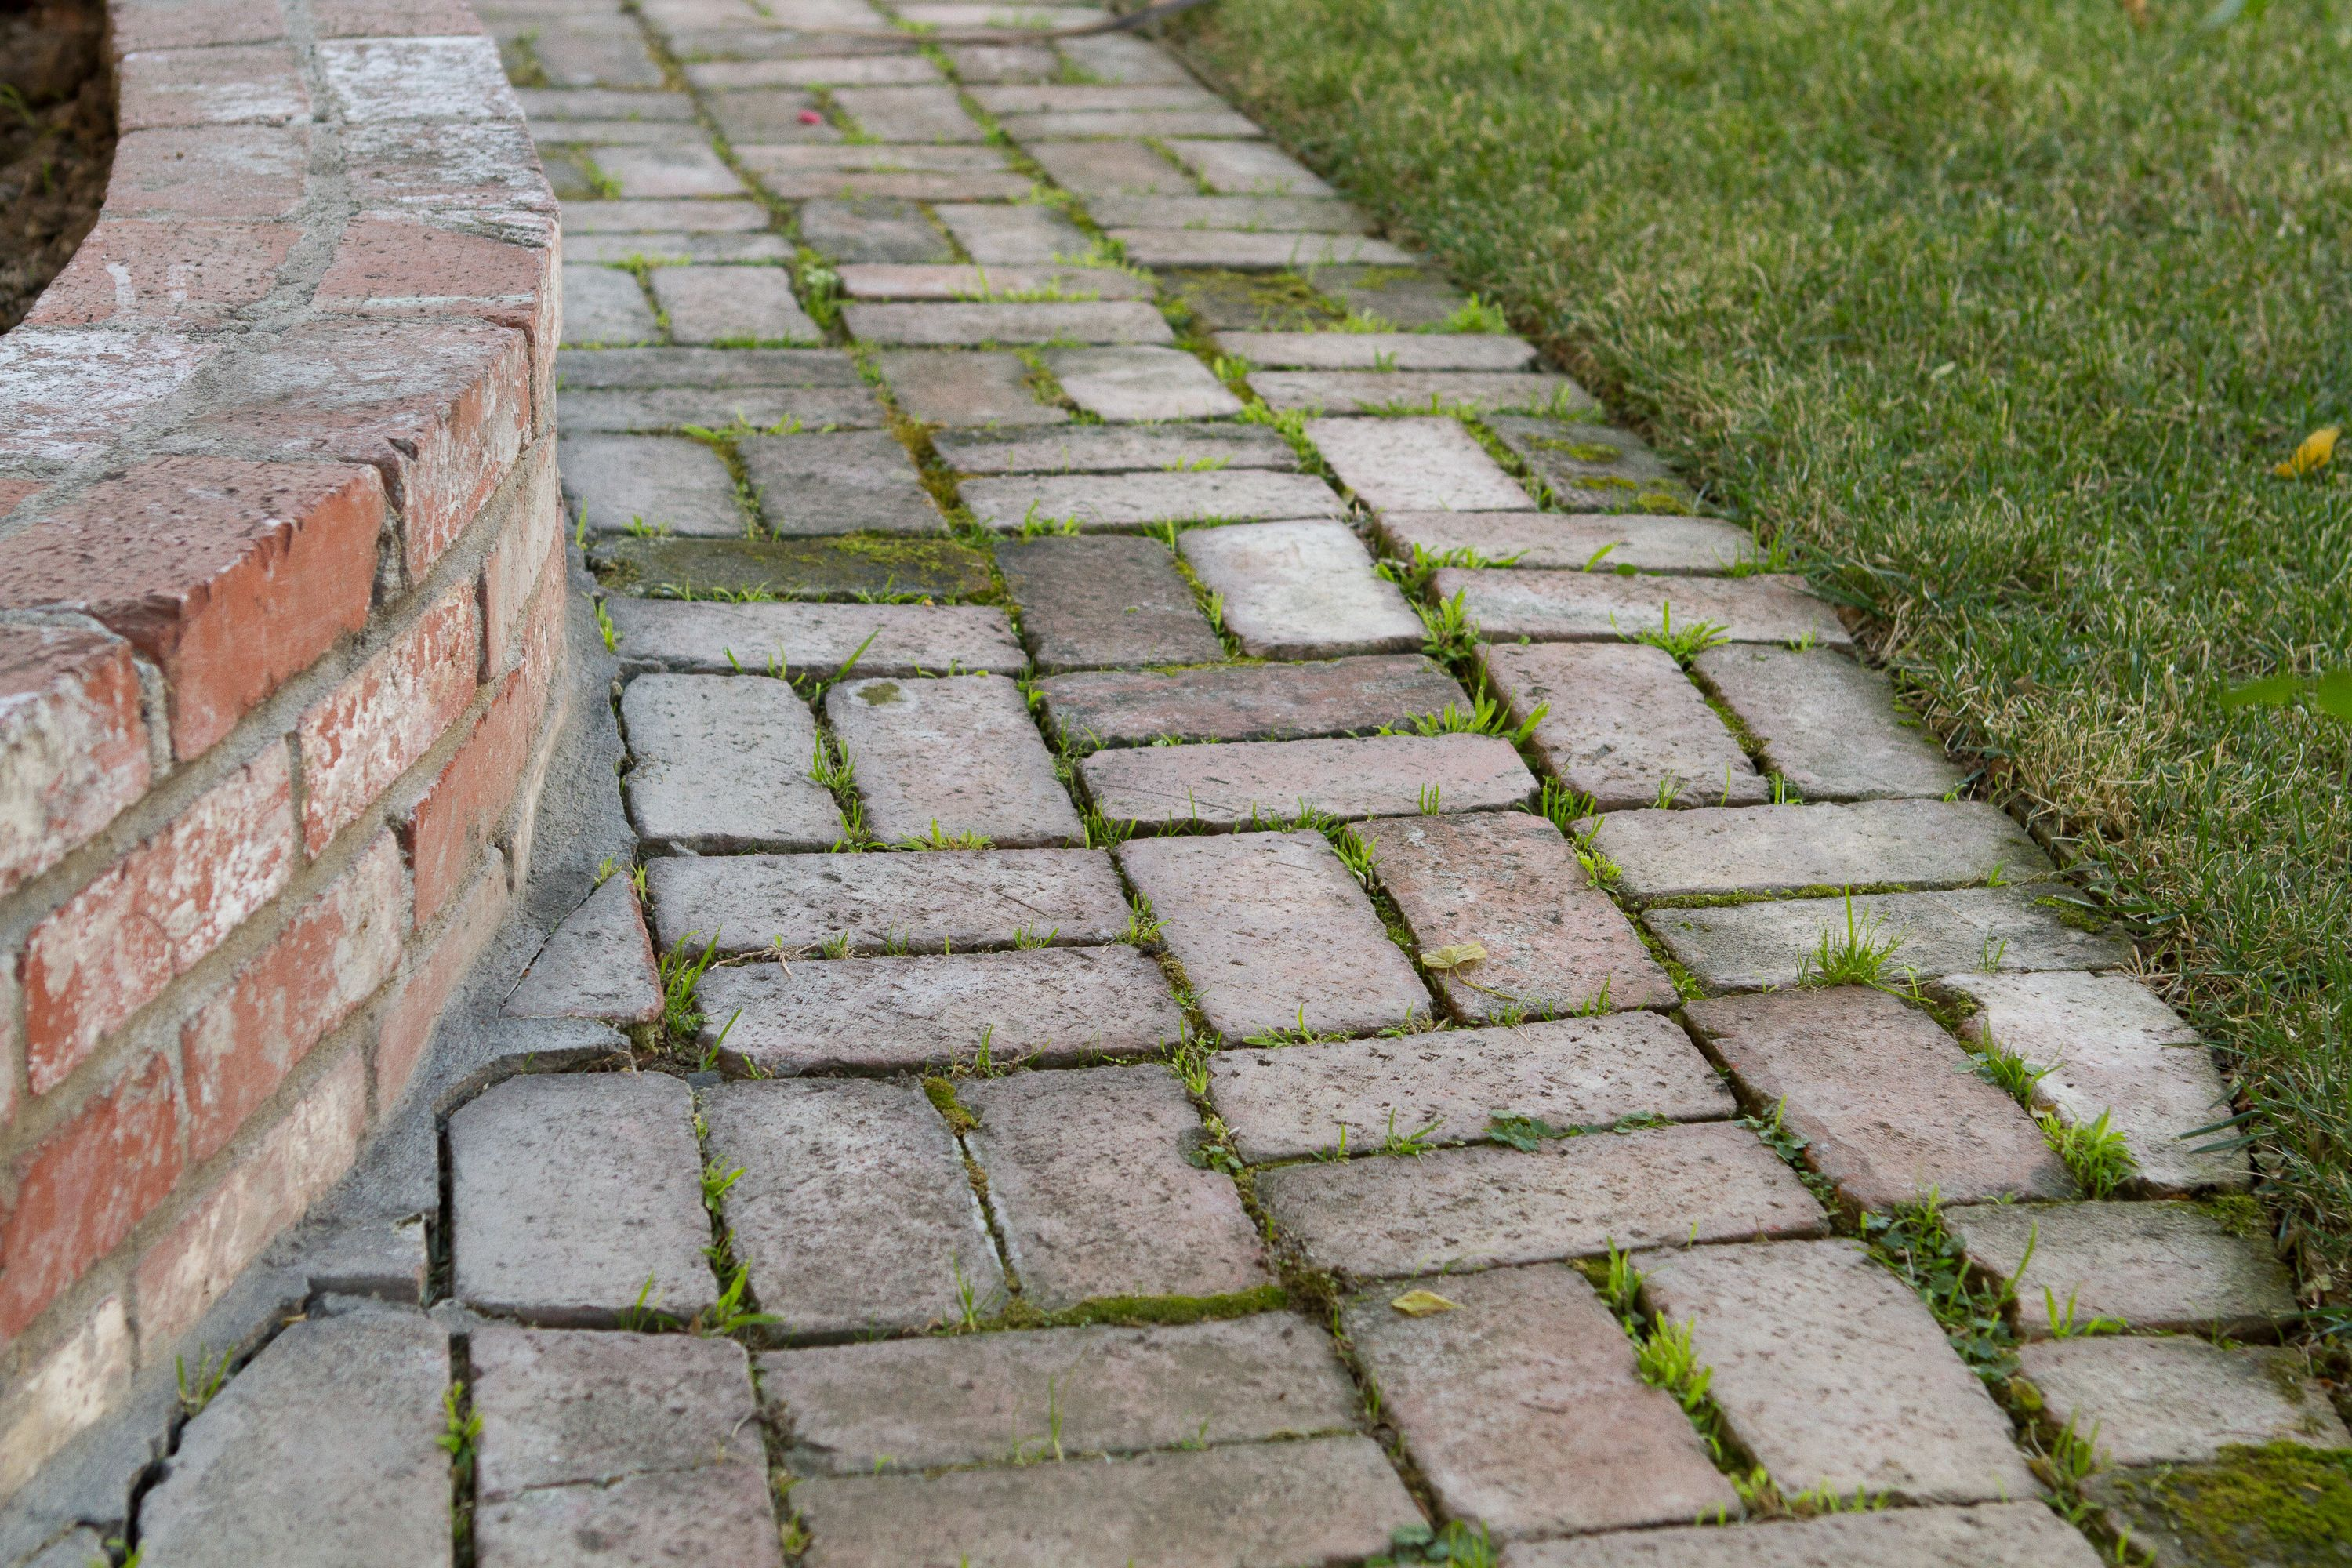 How To Remove Mold Algae From Brick Pavers Mold Remover Brick